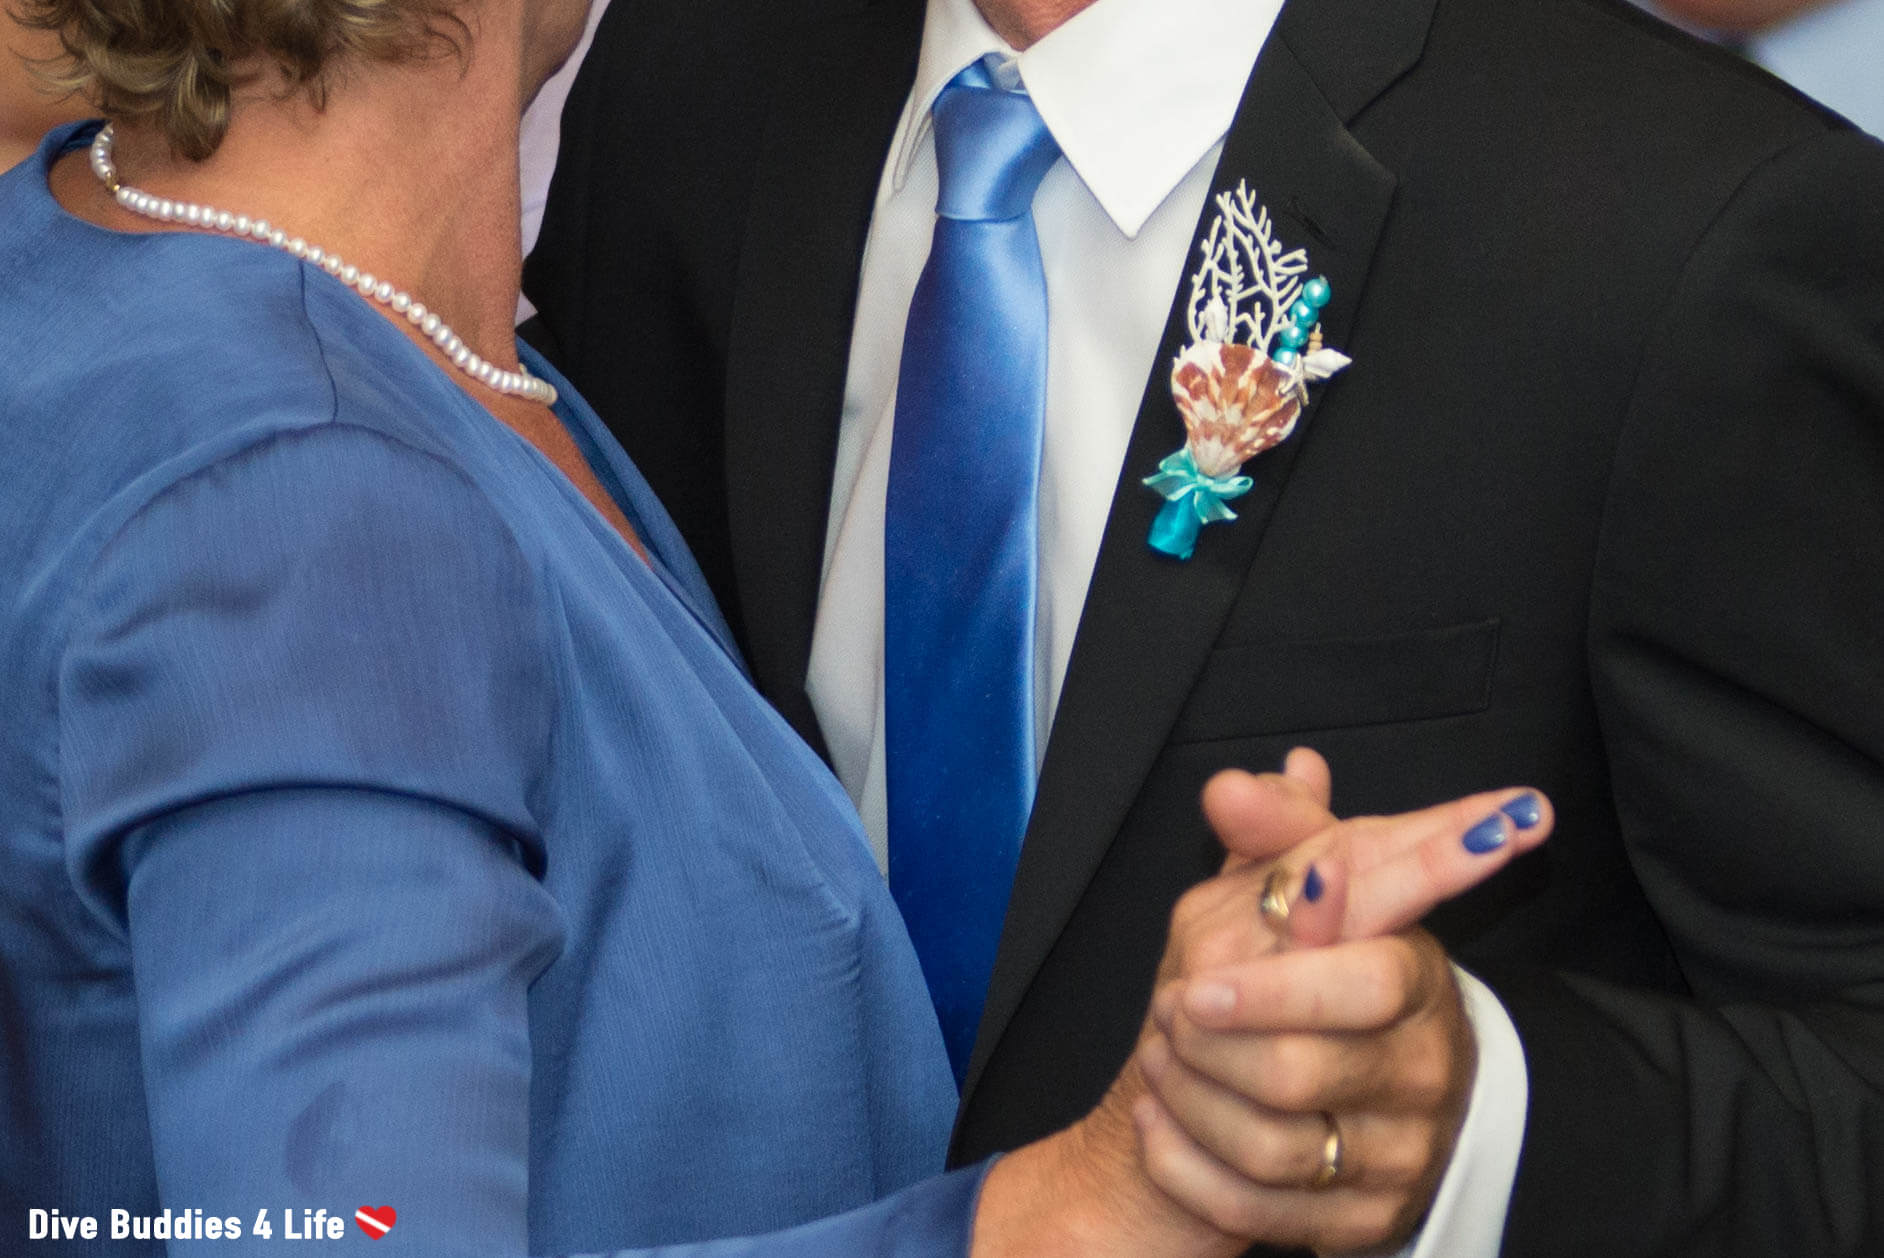 Marine Themed Boutonniere For The Men At A Scuba Diving Wedding